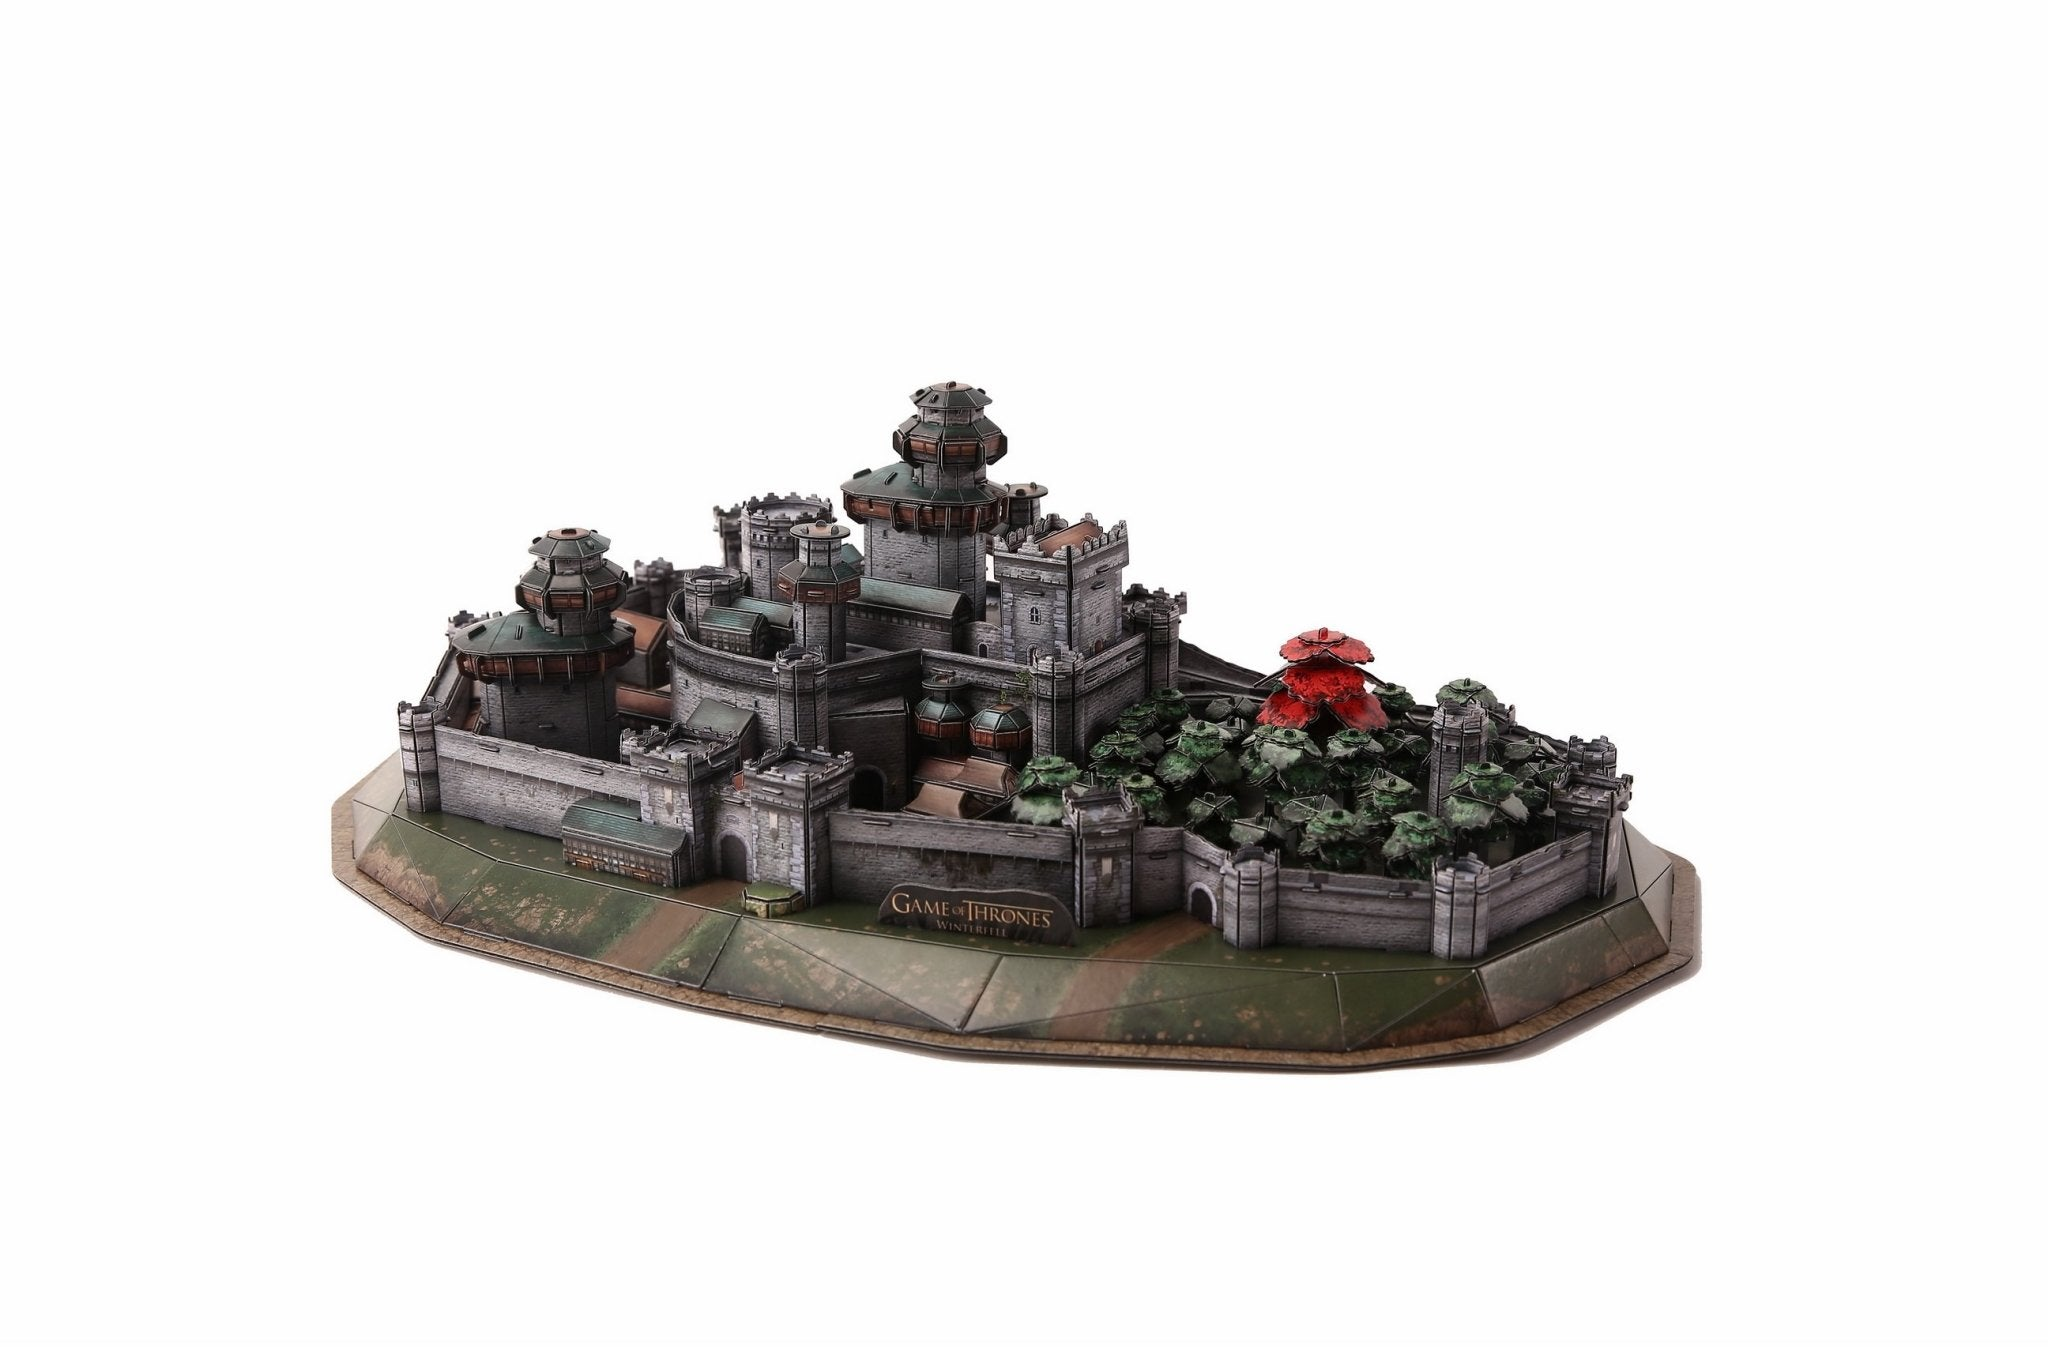 3D Puzzle Game of Thrones Winterfell Puzzle - 4D Puzzle - 4D Cityscape